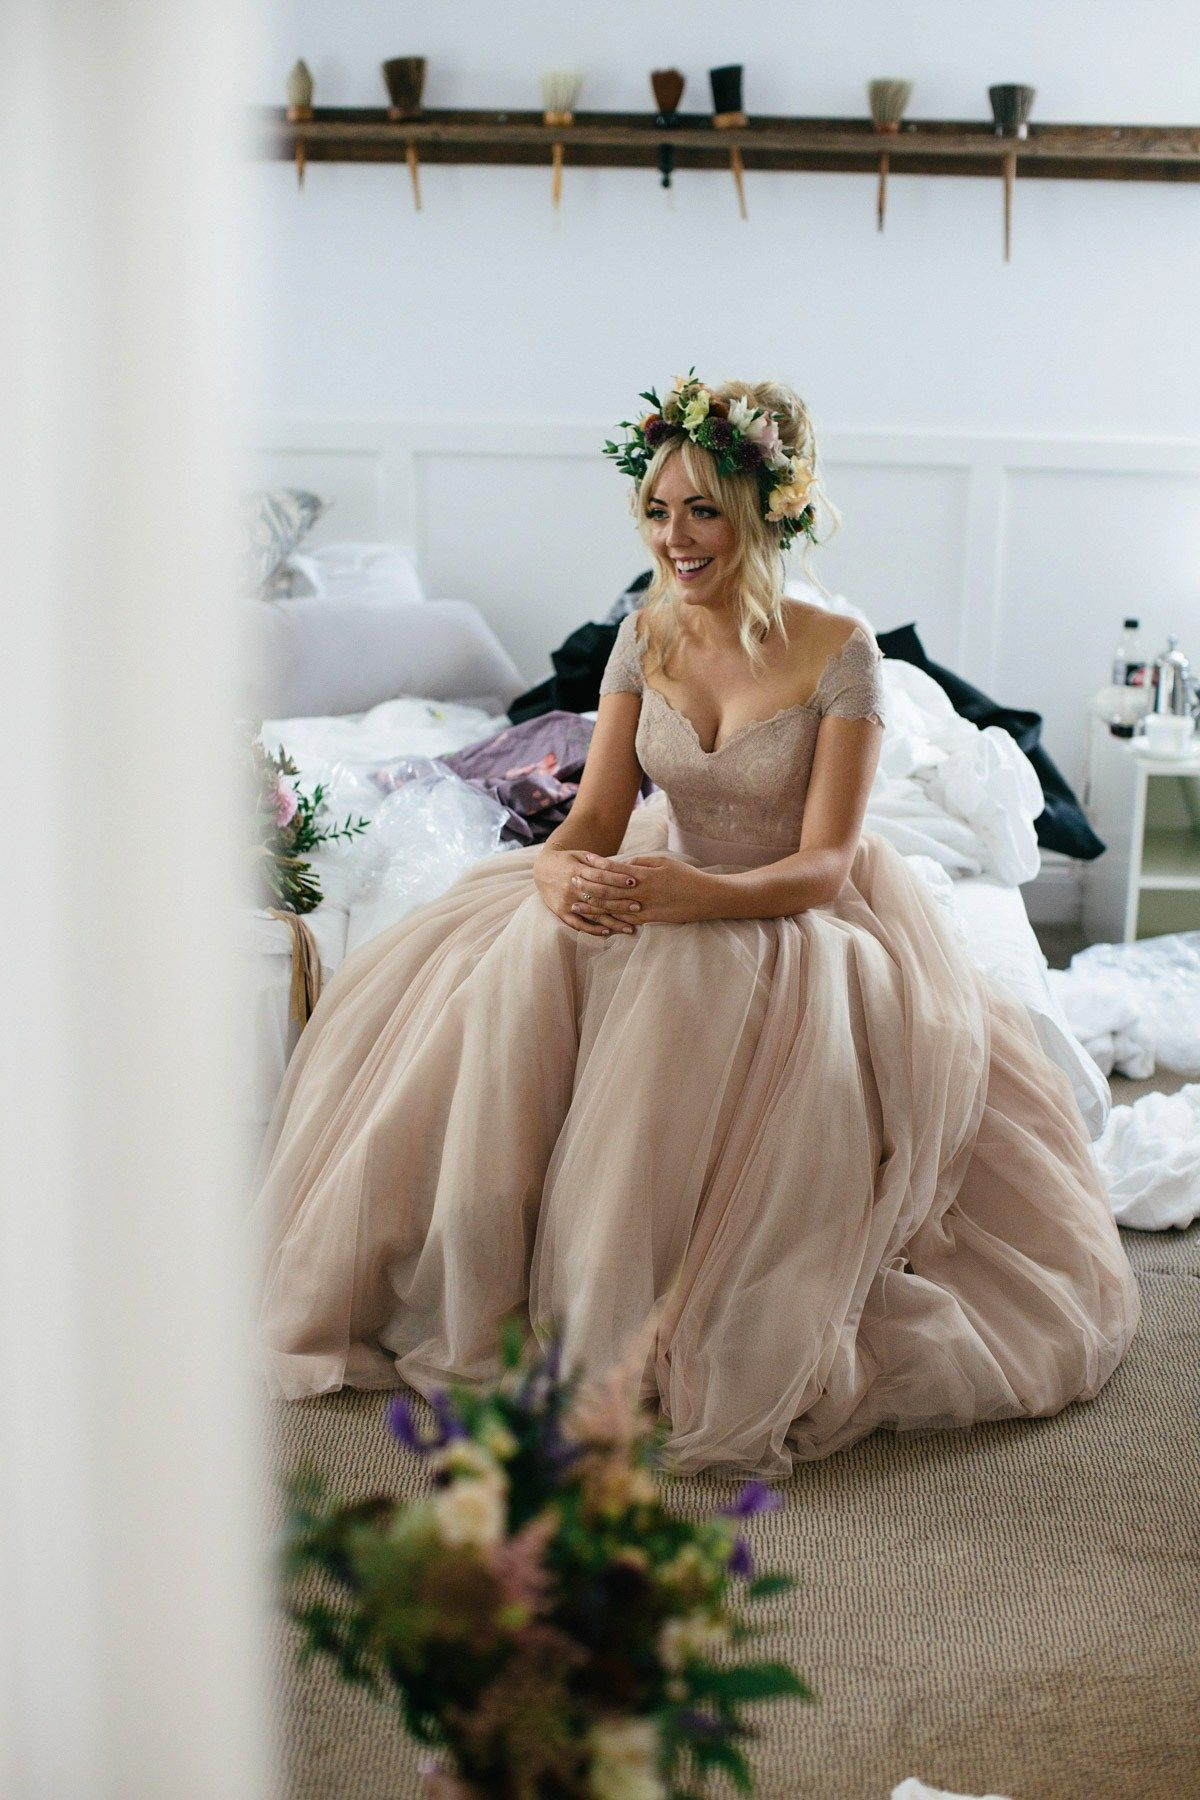 A dusky pink dress and floral crown for a romantic rainy day wedding